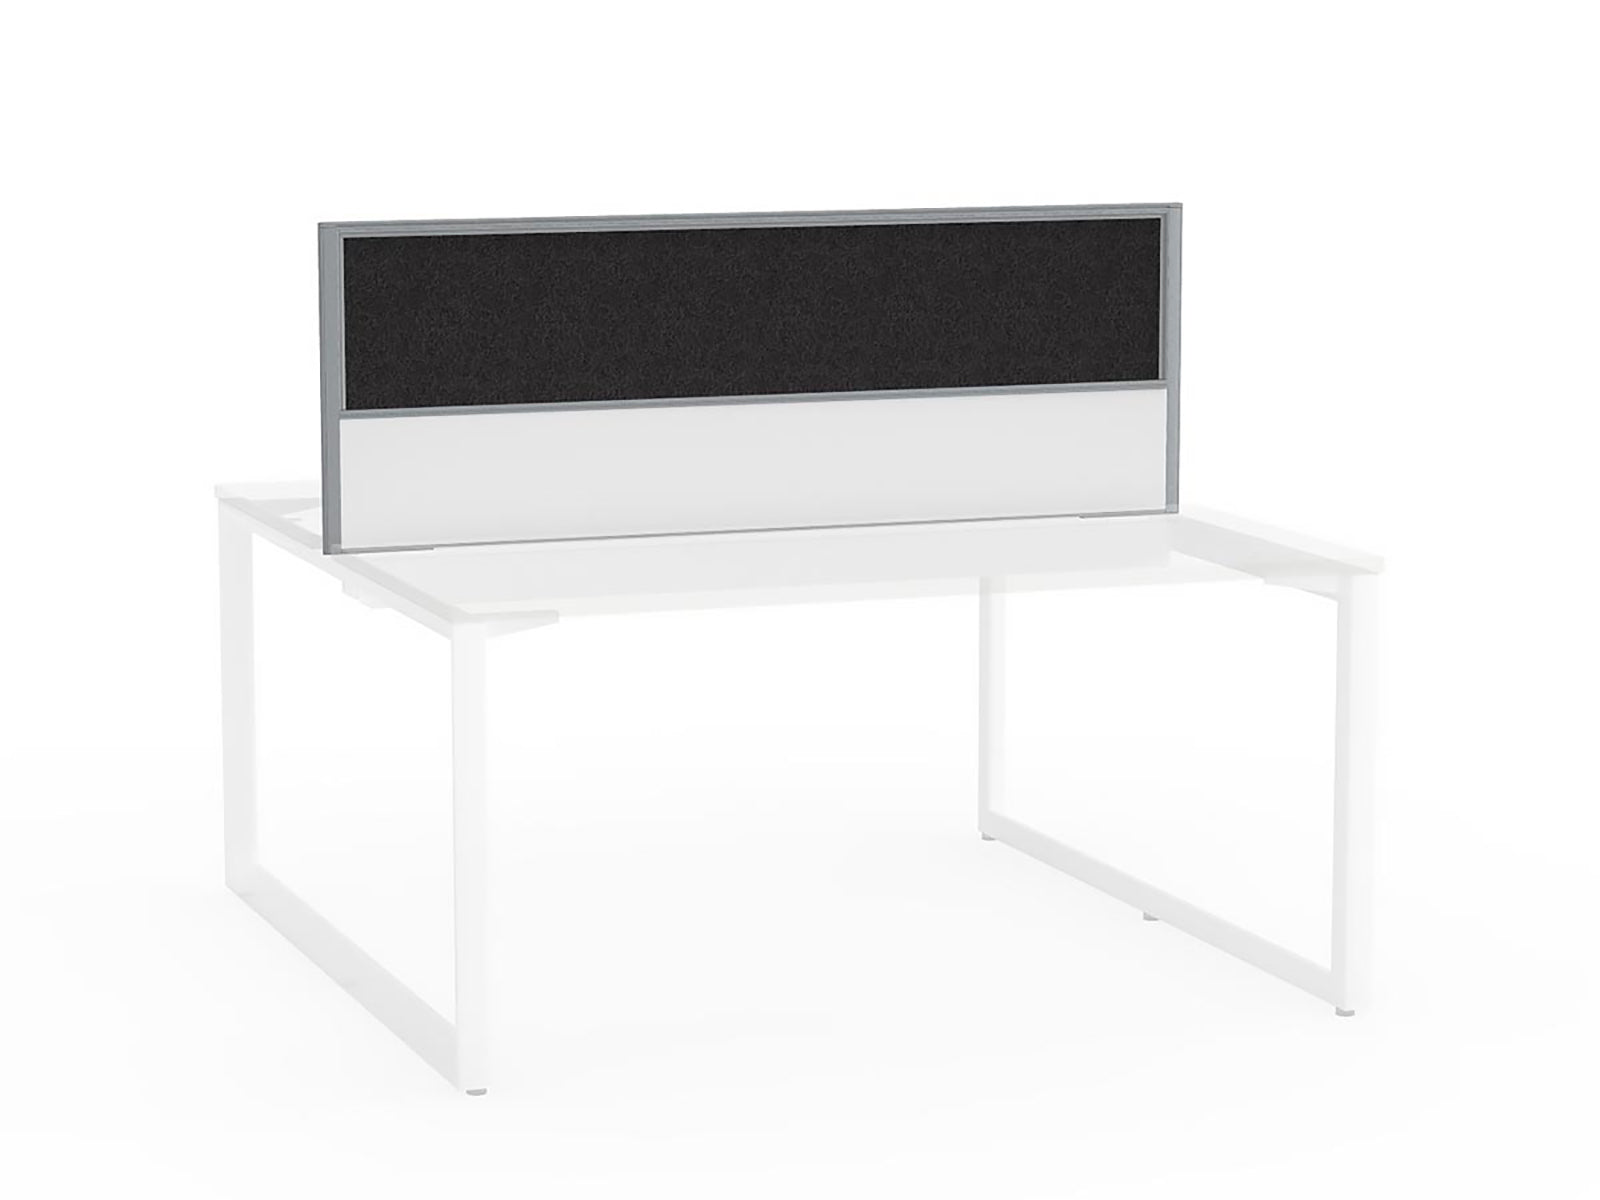 Tech Panel Screen for Anvil Shared 1.5m Desk - 2 User - Workspace Furniture Home and Office Desktop Mounted Partitions